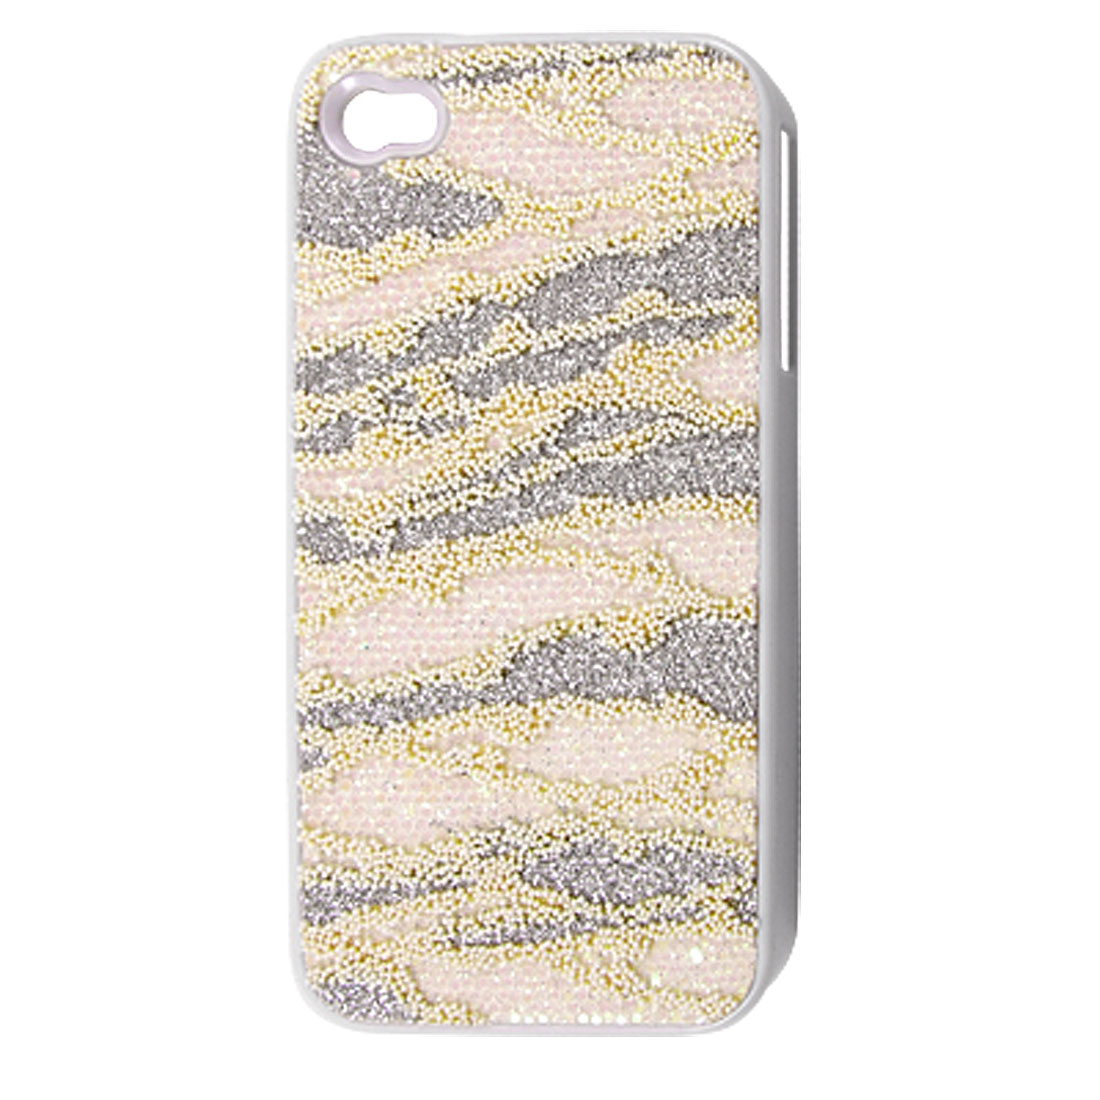 Silver Tone Powder Light Pink Sequins Hard Plastic Back Case for iPhone 4 4G 4S